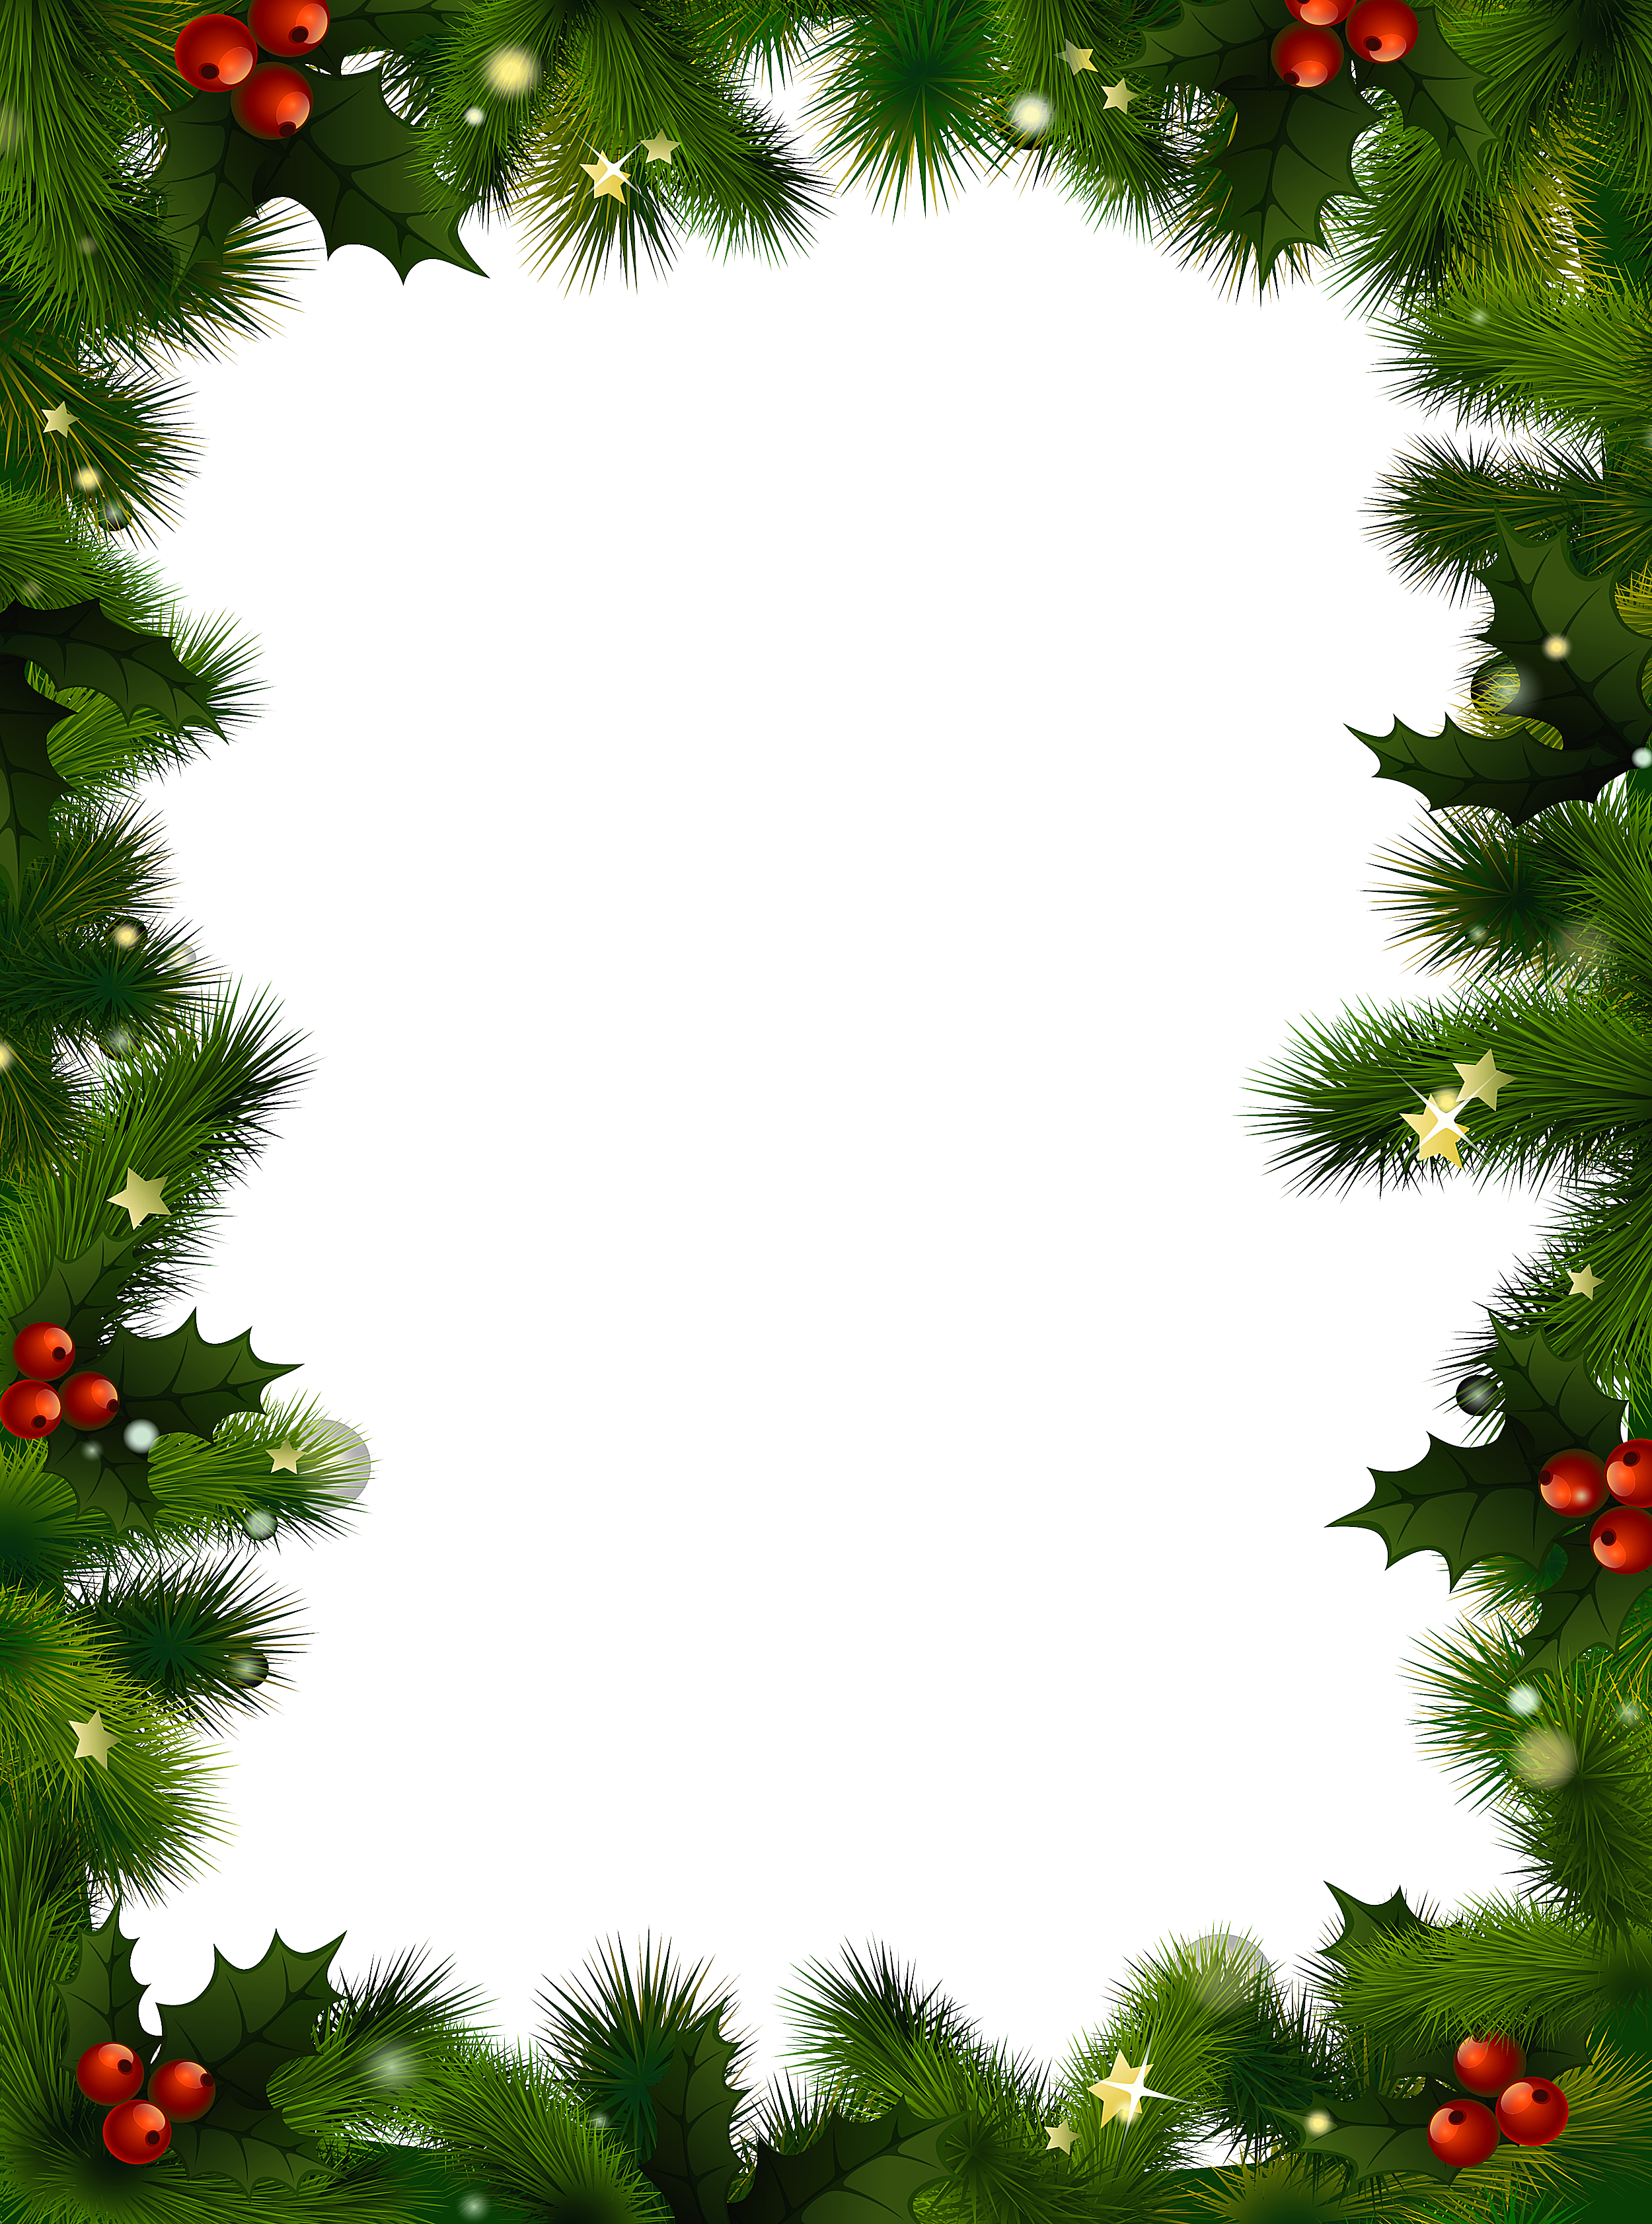 holiday borders for word documents free